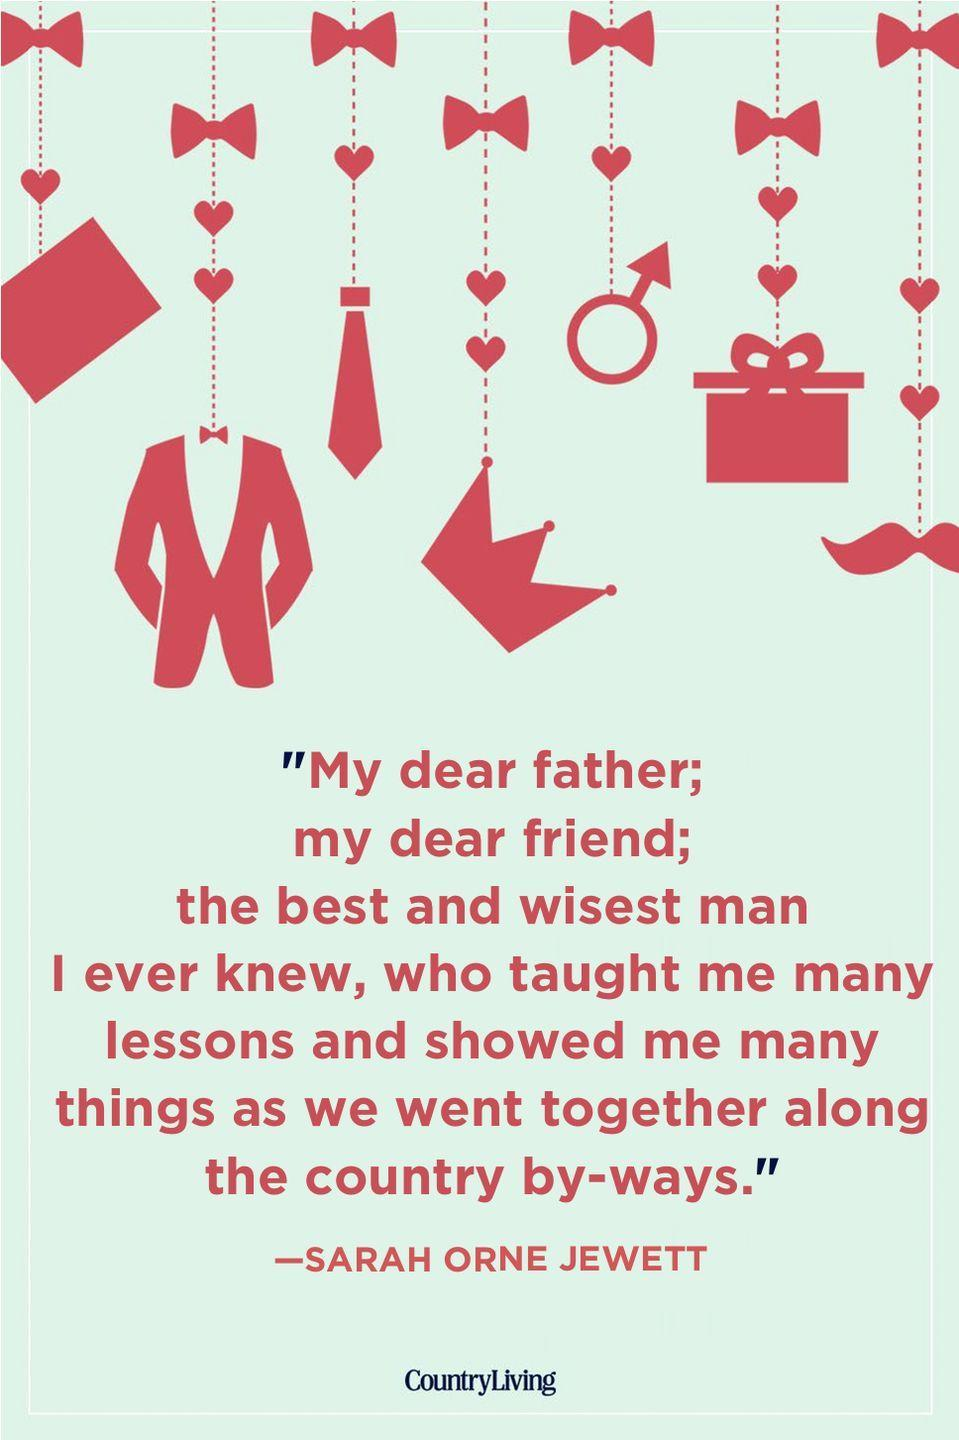 """<p>""""My dear father; my dear friend; the best and wisest man I ever knew, who taught me many lessons and showed me many things as we went together along the country by-ways.""""</p>"""